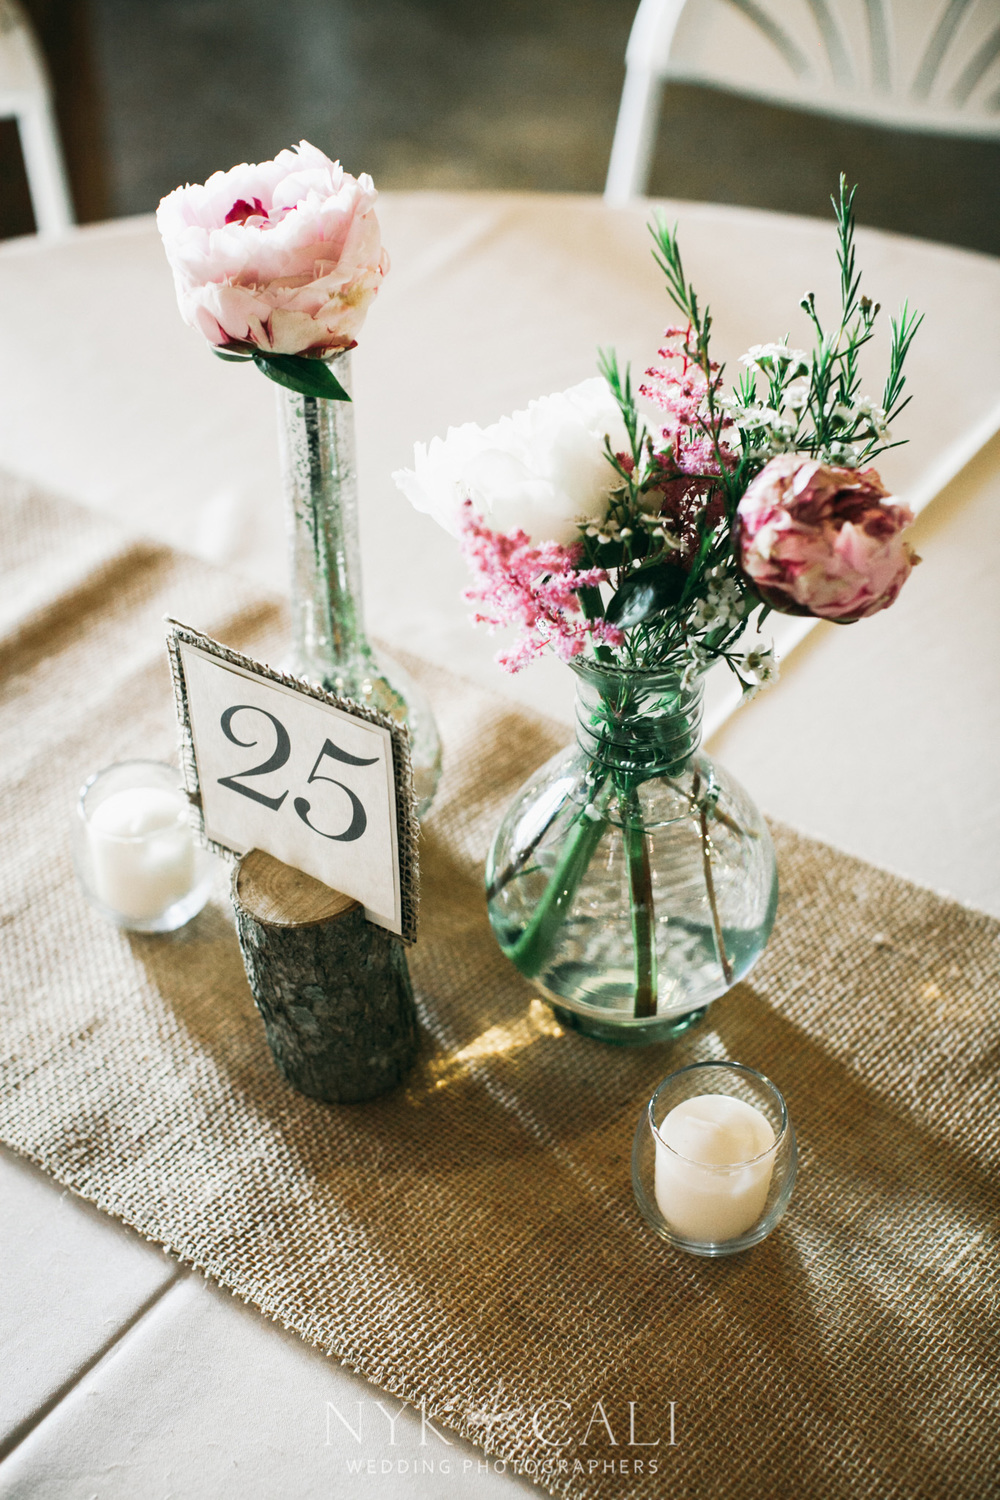 Burlap and Lace Bride - Locklane Weddings & Events, Nashville Wedding Planner